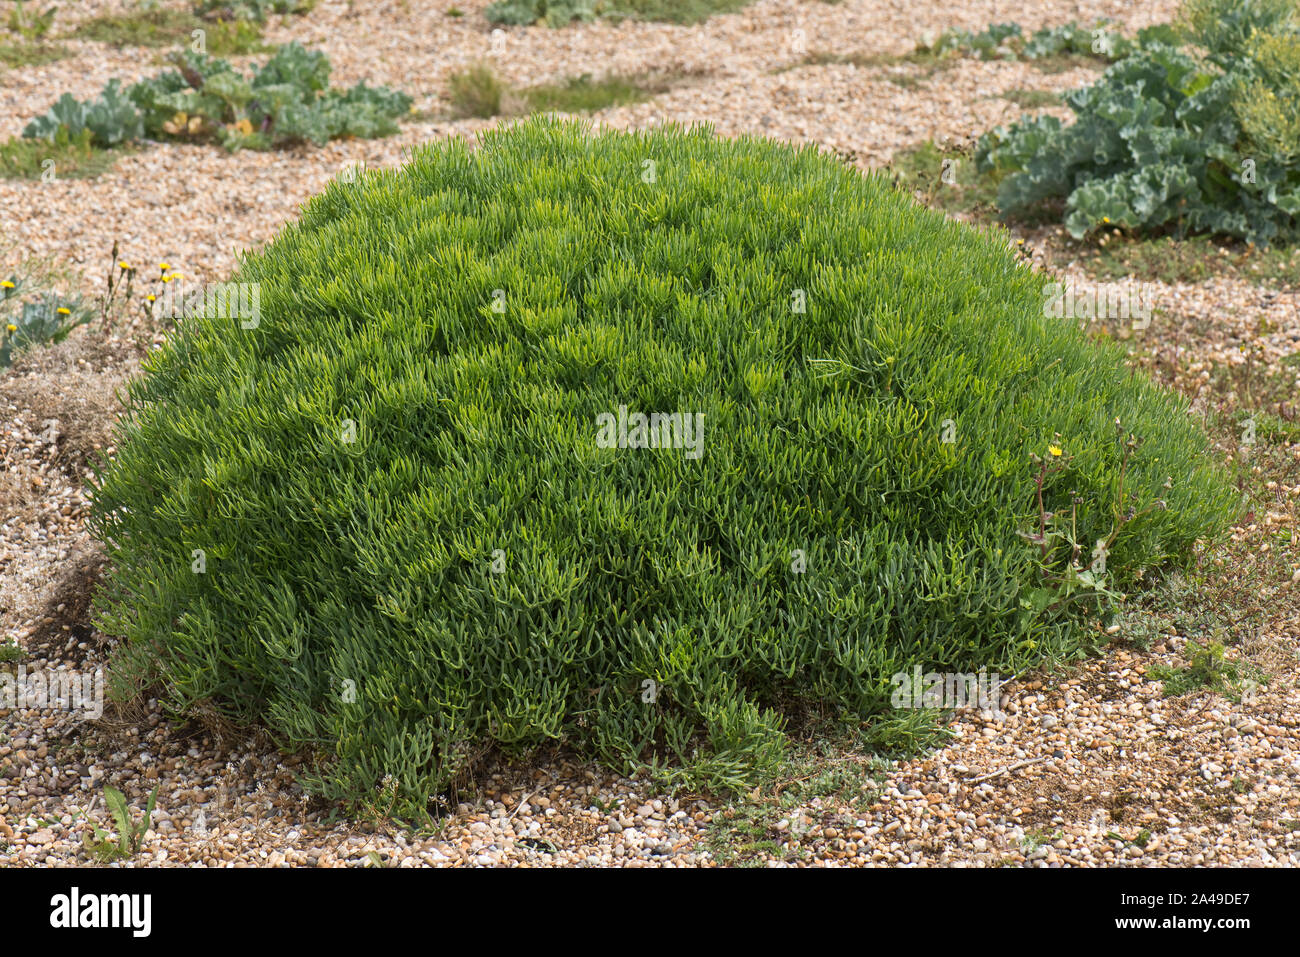 Rock samphire (Crithmum maritimum) dome shaped plant before flowering on shingle at Chesil Beach in Dorset, June Stock Photo